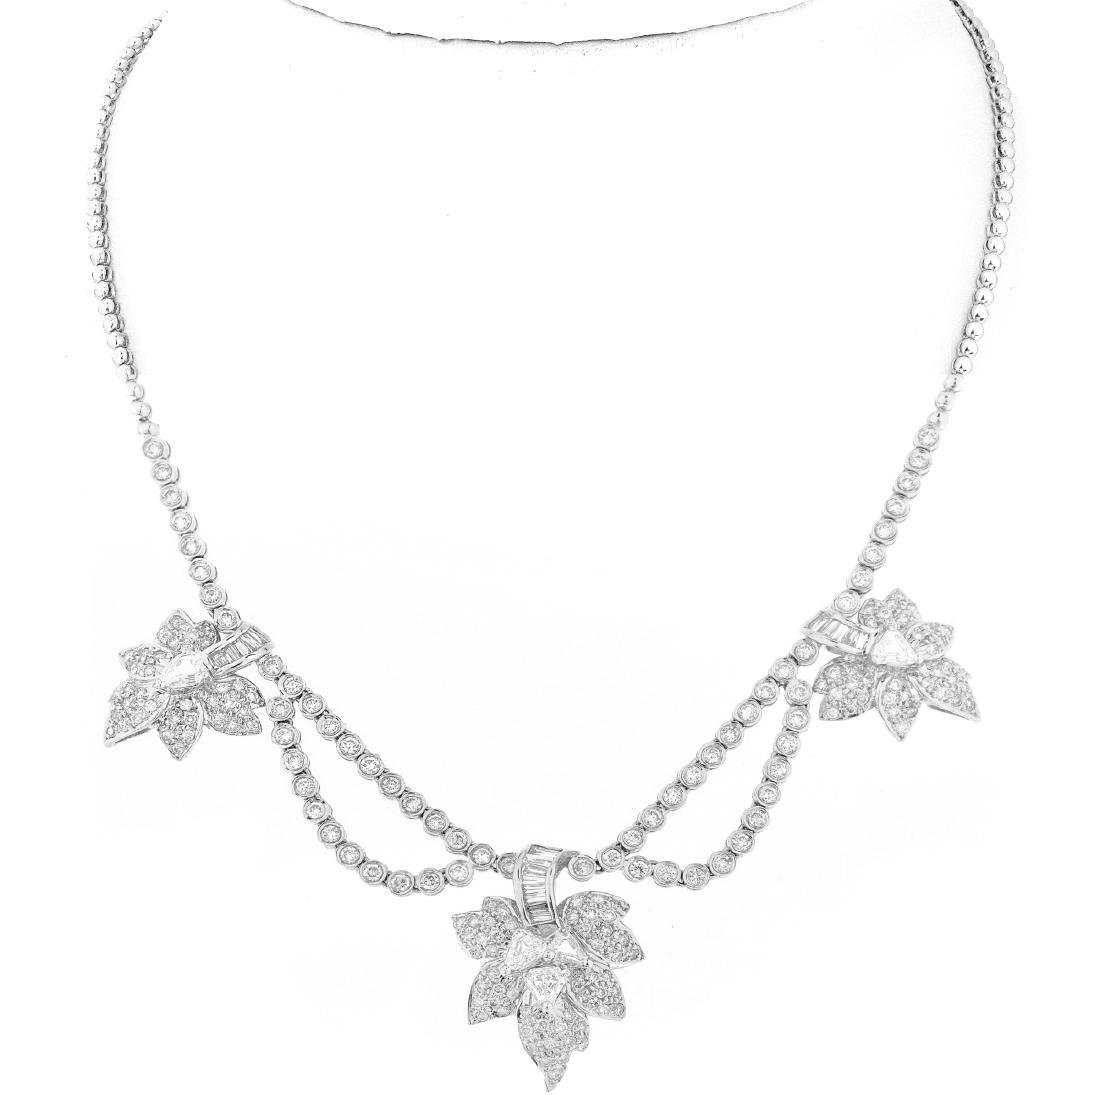 6.09ct Diamond and 18K Gold Necklace